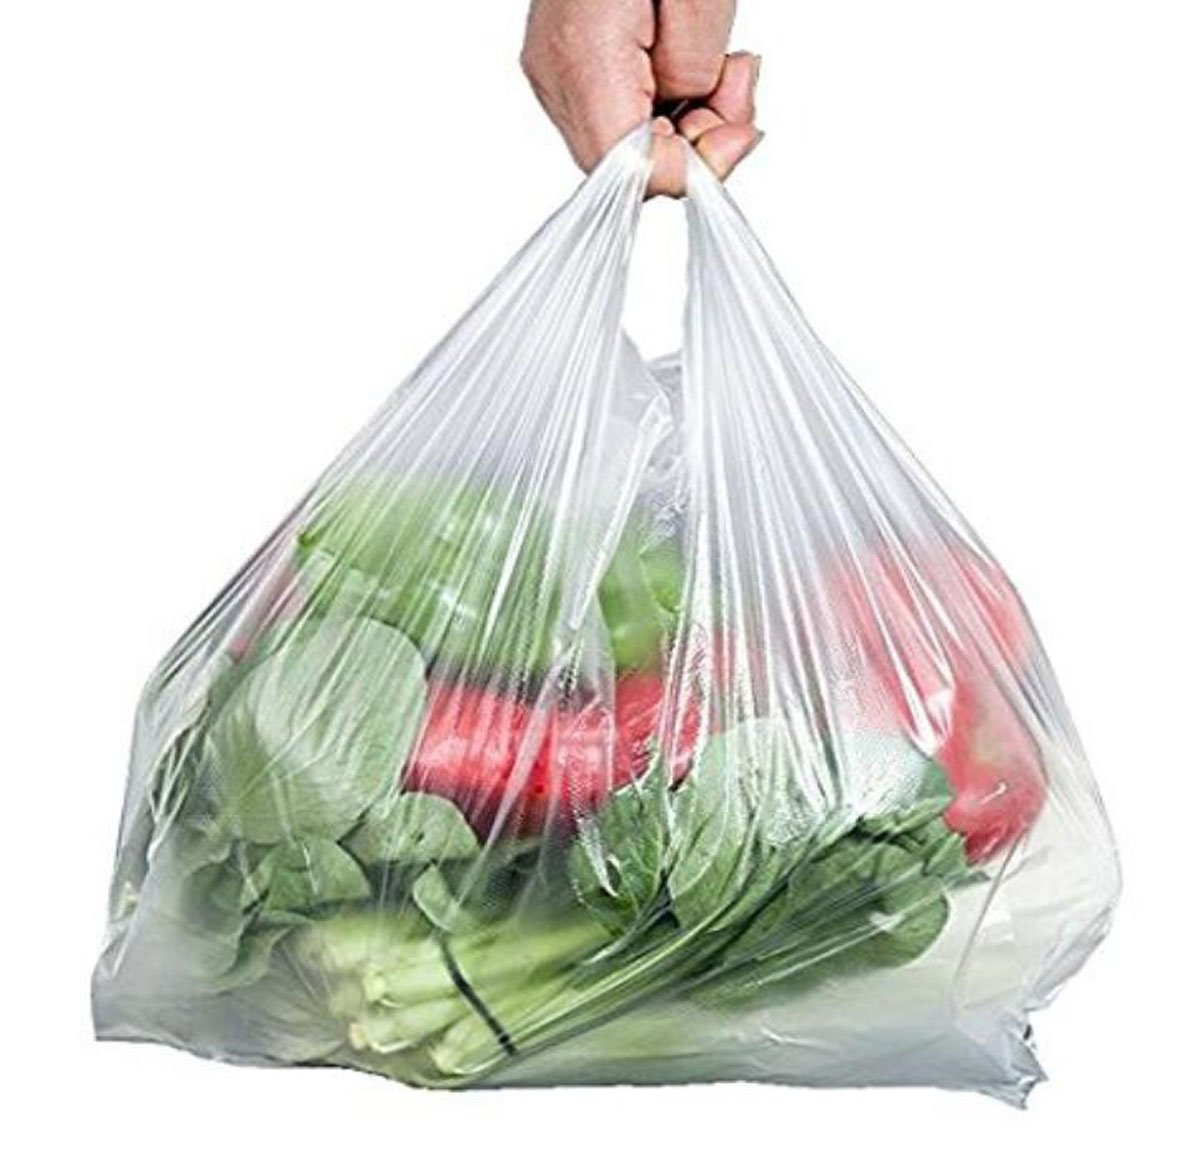 100PCS 8.85X15.7( 22.5X40cm)Clear Vest Plastic T-shirt Carrier Bags For Retail Shopping Supermarket Household Food Storage Take-away Packaging Bag ASTRQLE